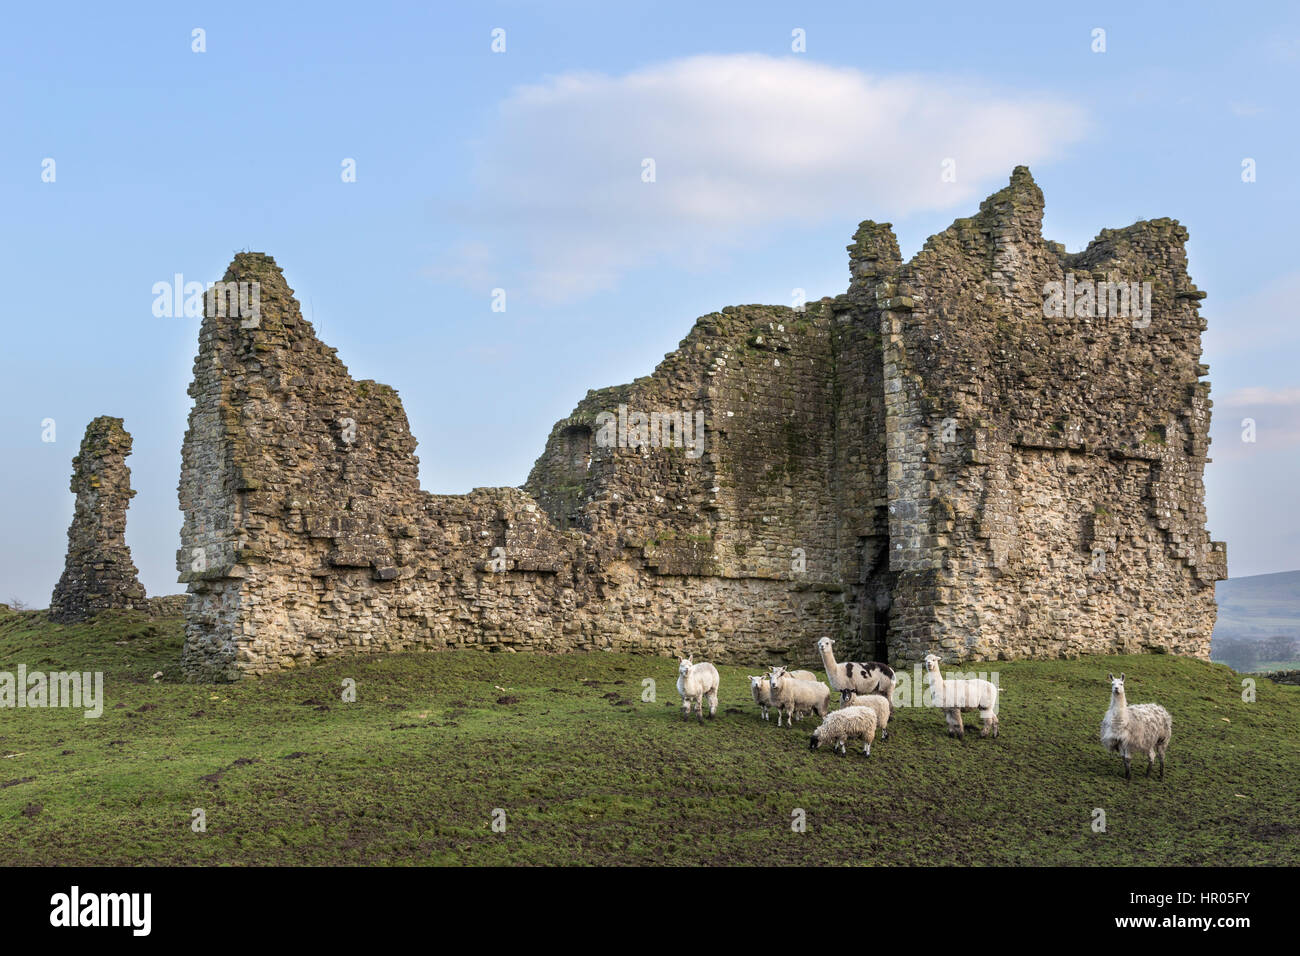 Bewcastle Castle, Cumbria, England - remains of the the west curtain wall and gatehouse. Sheep and alpacas pose - Stock Image